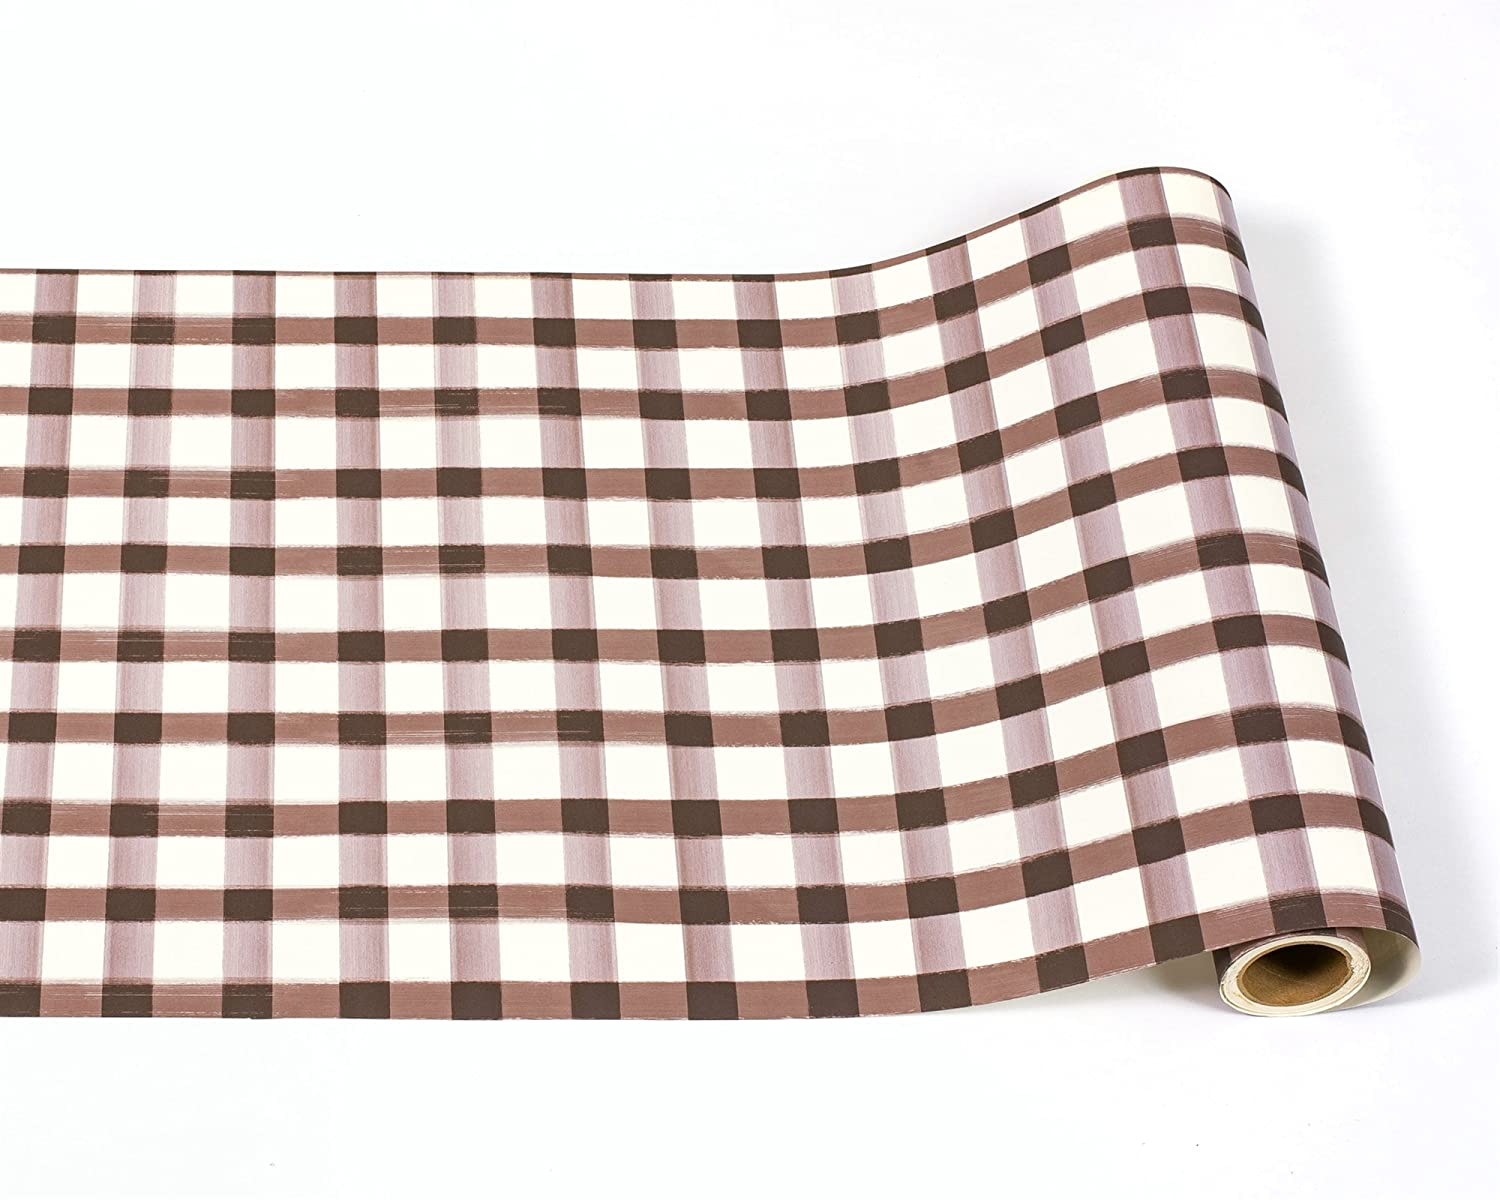 Spiderweb Hester /& Cook Paper Table Runner 20 x 25 Roll